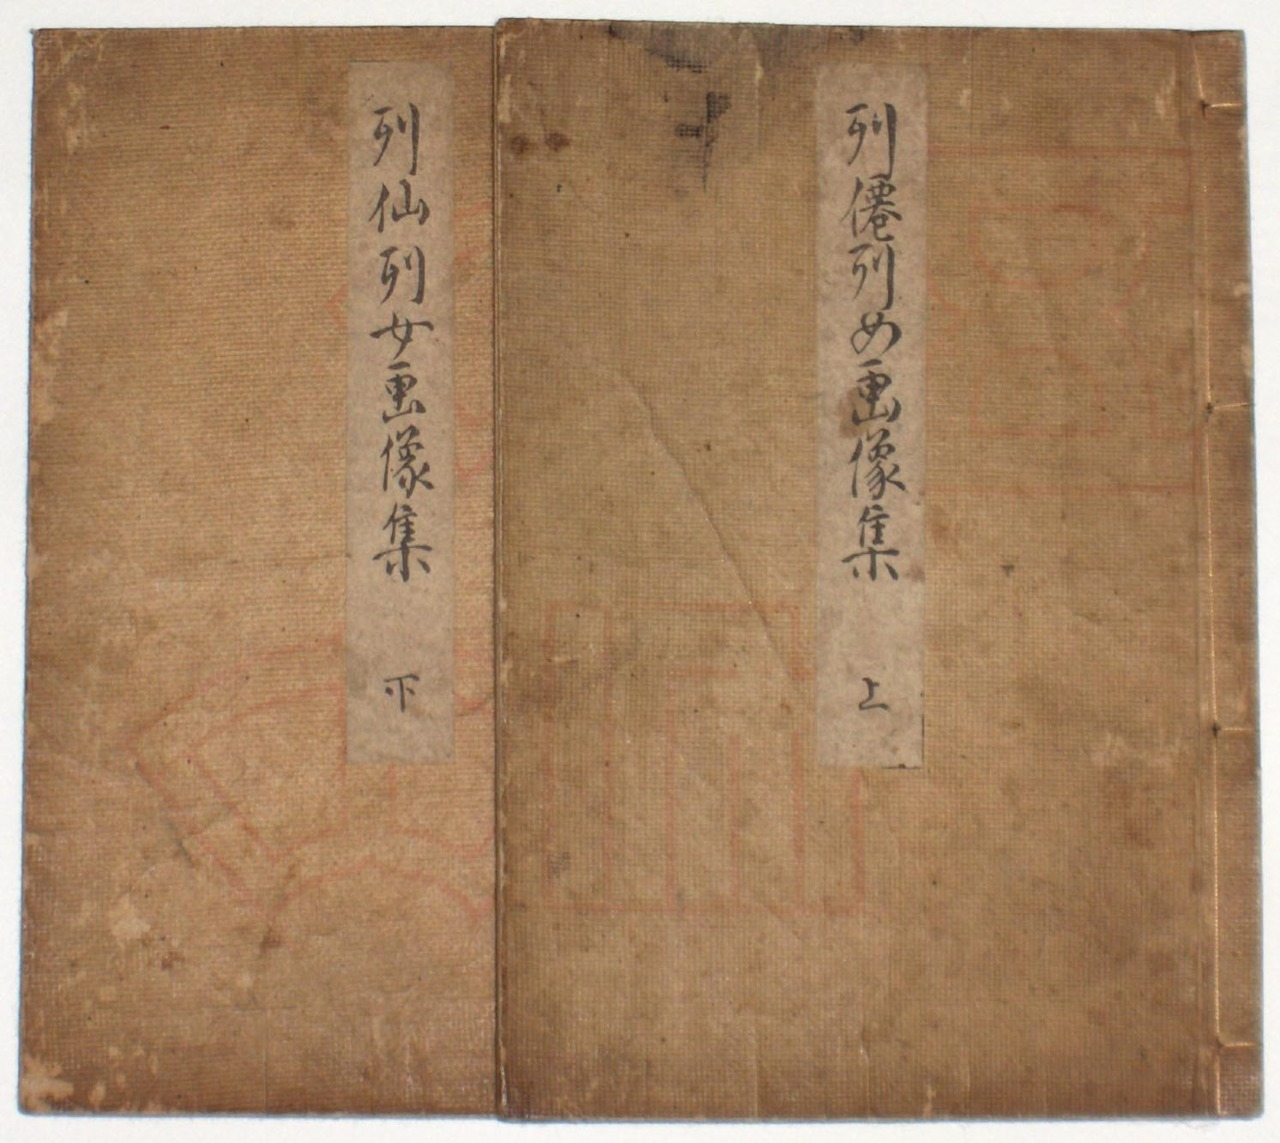 "Yashima GAKUTEI (1786-1868) and Totoya HOKKEI (1780-1850) Two vols. kyoka books complete: Ressen retsujo gazoshu, a ""Collection of the Portraits of Immortal Men and Women."" Twenty eight portraits of Chinese hermits and twenty one portraits of celebrated women in Japanese history. Being a selection of kyoka presented at the meetimg held at Kawachiya of Yanagibashi Ryogoku in Edo, 1st day of the 9th month, Bunsei 7 ( 1824 ). Published by Shinsenyen. Original covers and title slips. via"